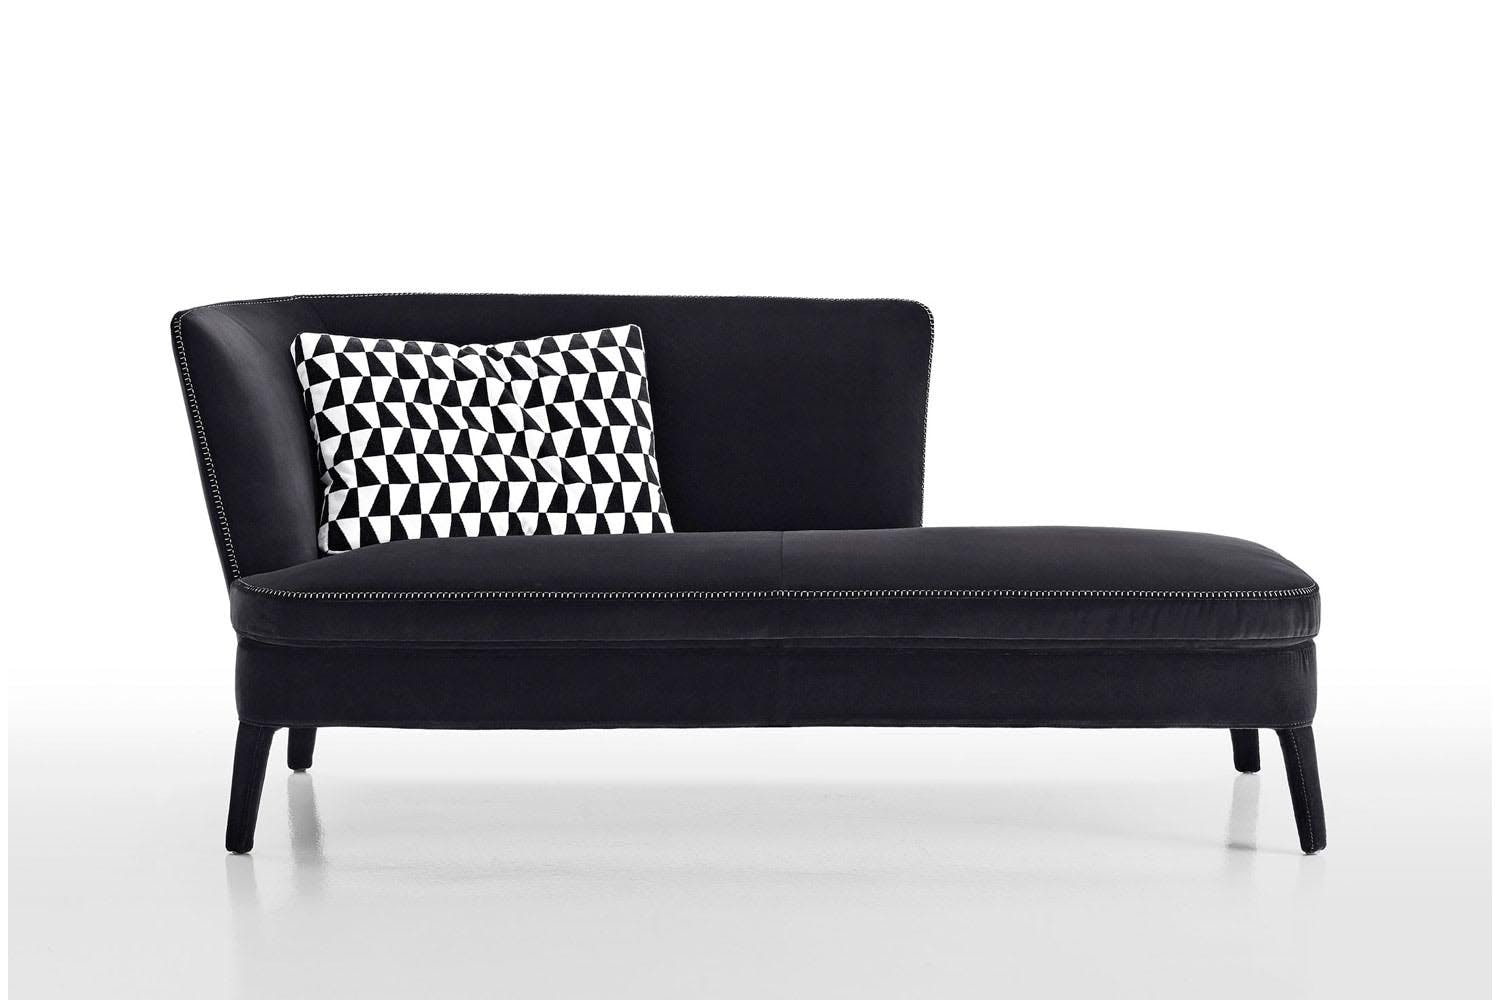 febo 39 15 chaise longue by antonio citterio for maxalto. Black Bedroom Furniture Sets. Home Design Ideas